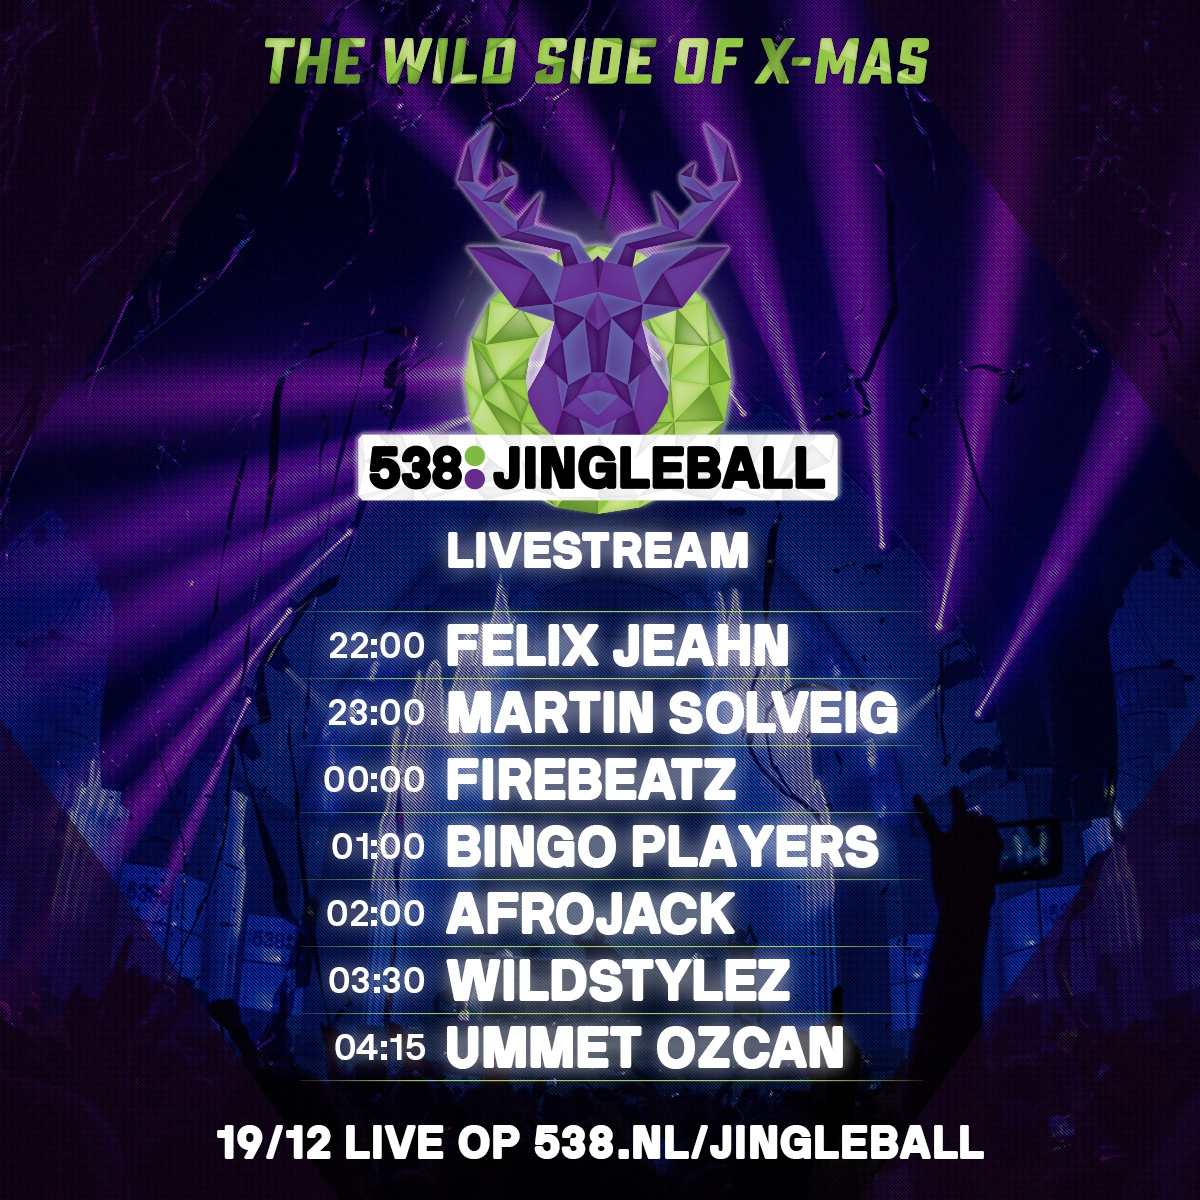 download → livesets from 538 Jingle Ball (Ziggo Dome Amsterdam) - 19-Dec-2015